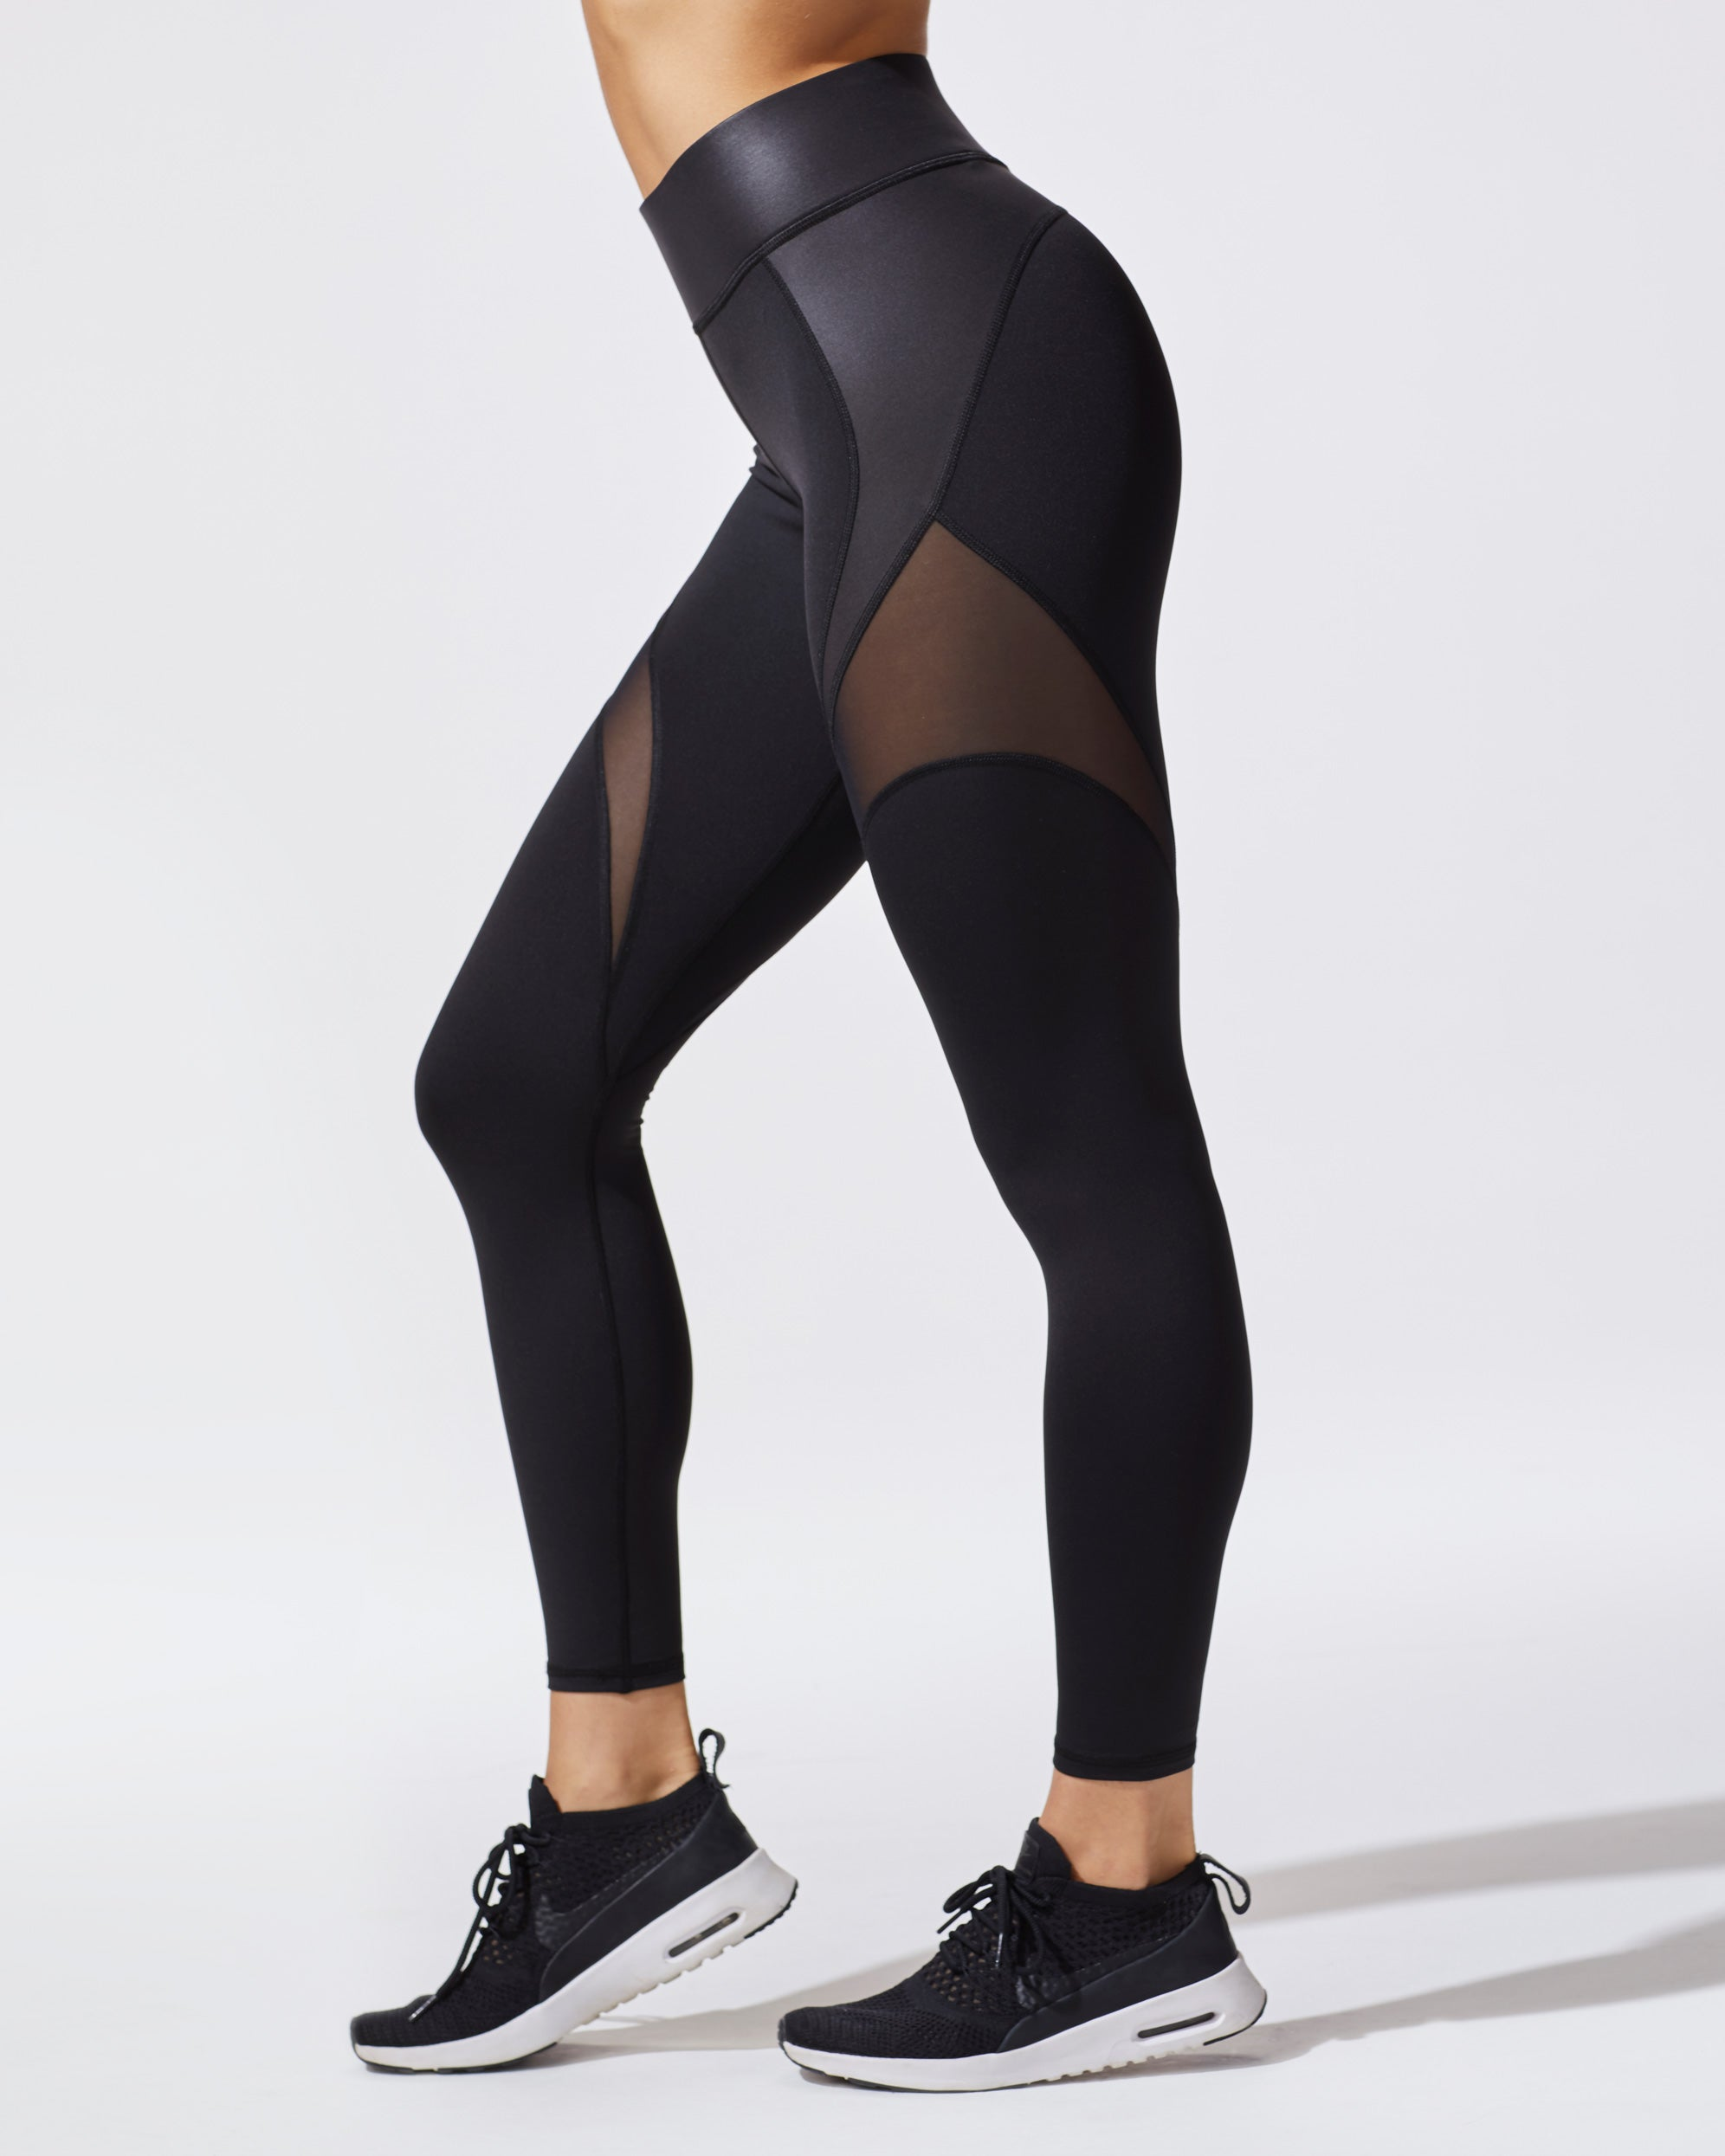 glow-legging-liquid-black